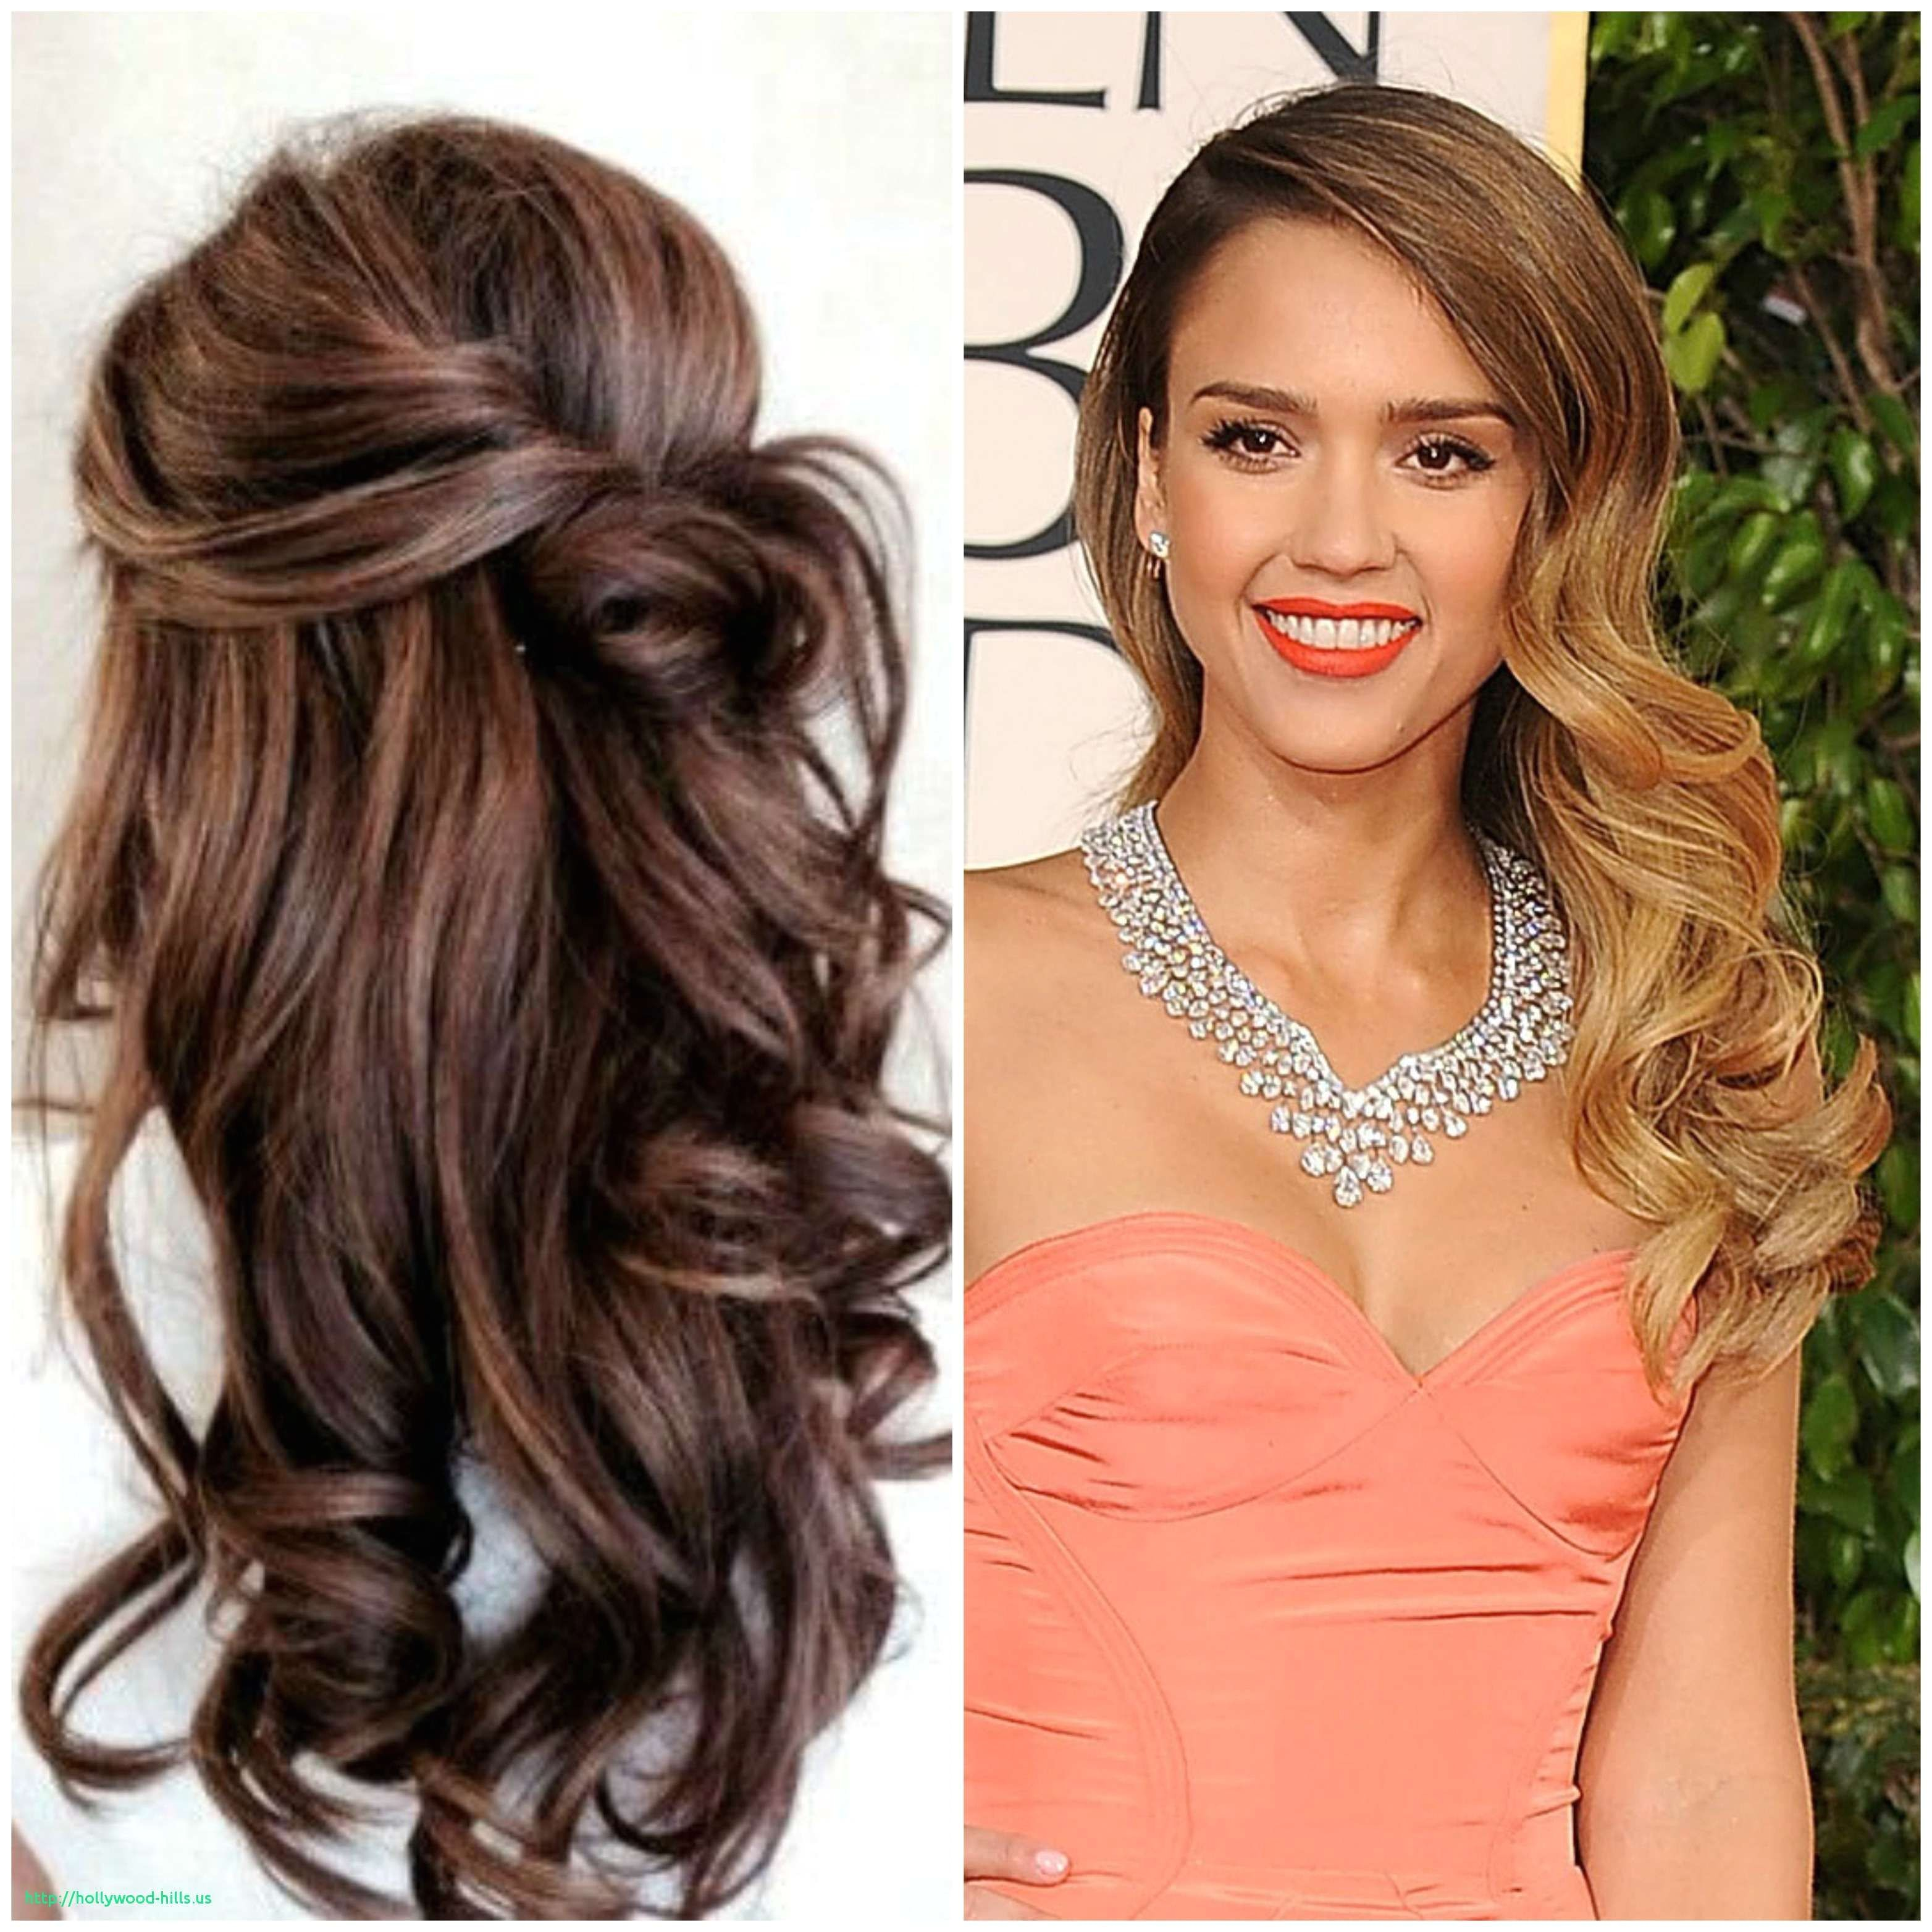 Long Wedding Hairstyles Inspirational Hairstyles for Long Hair 2015 Luxury I Pinimg 1200x 0d